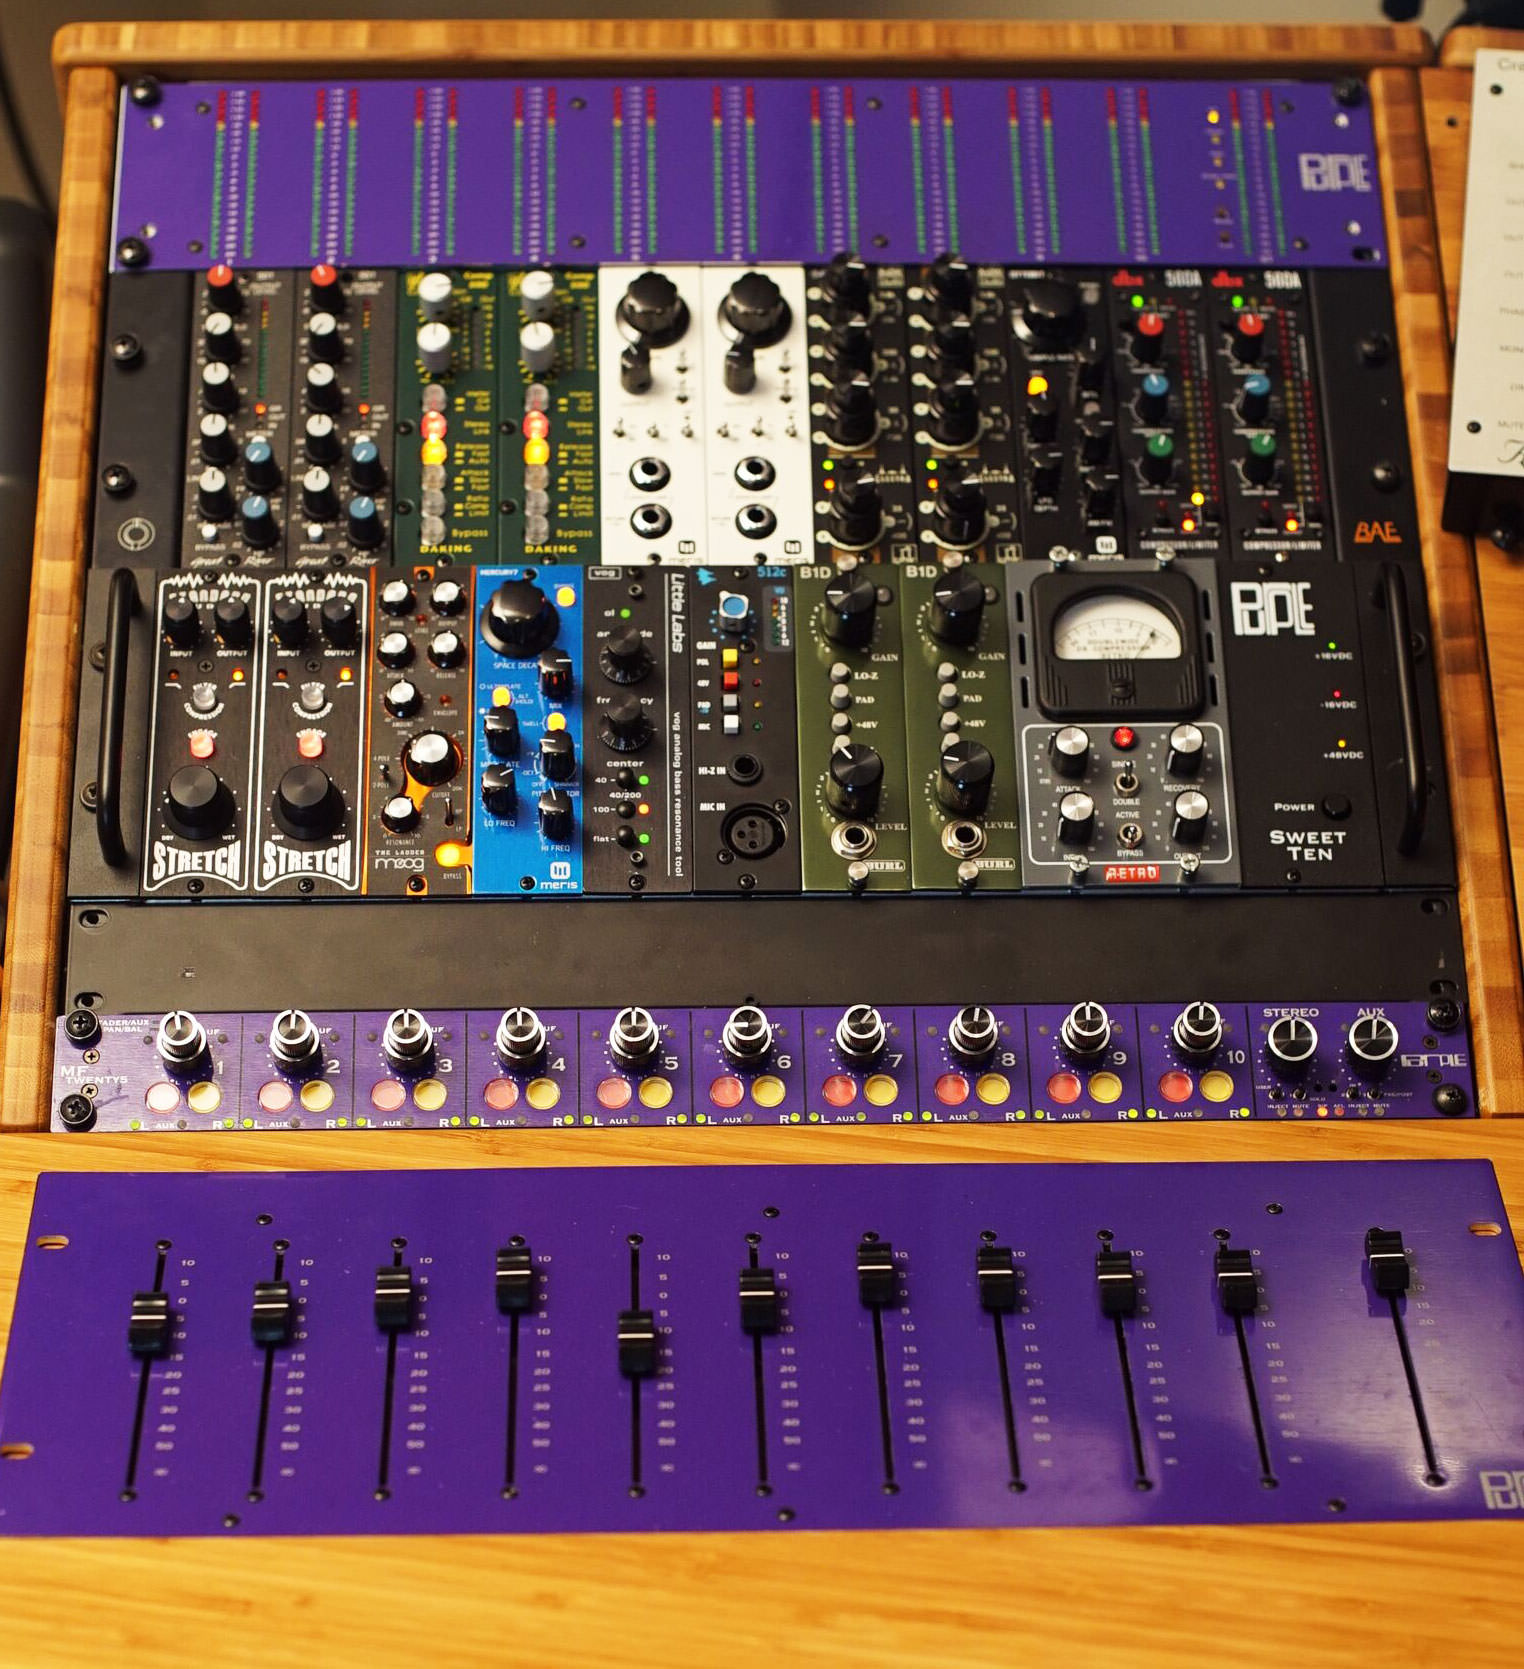 Purple Audio Mftwenty5 Modular Console Tape Op Magazine Mixer With Multiple Input Channels This Setups Attractiveness Lies In The Combination Of High Quality Sonics Good Ergonomics And Ability To Make Adjustments On Analog